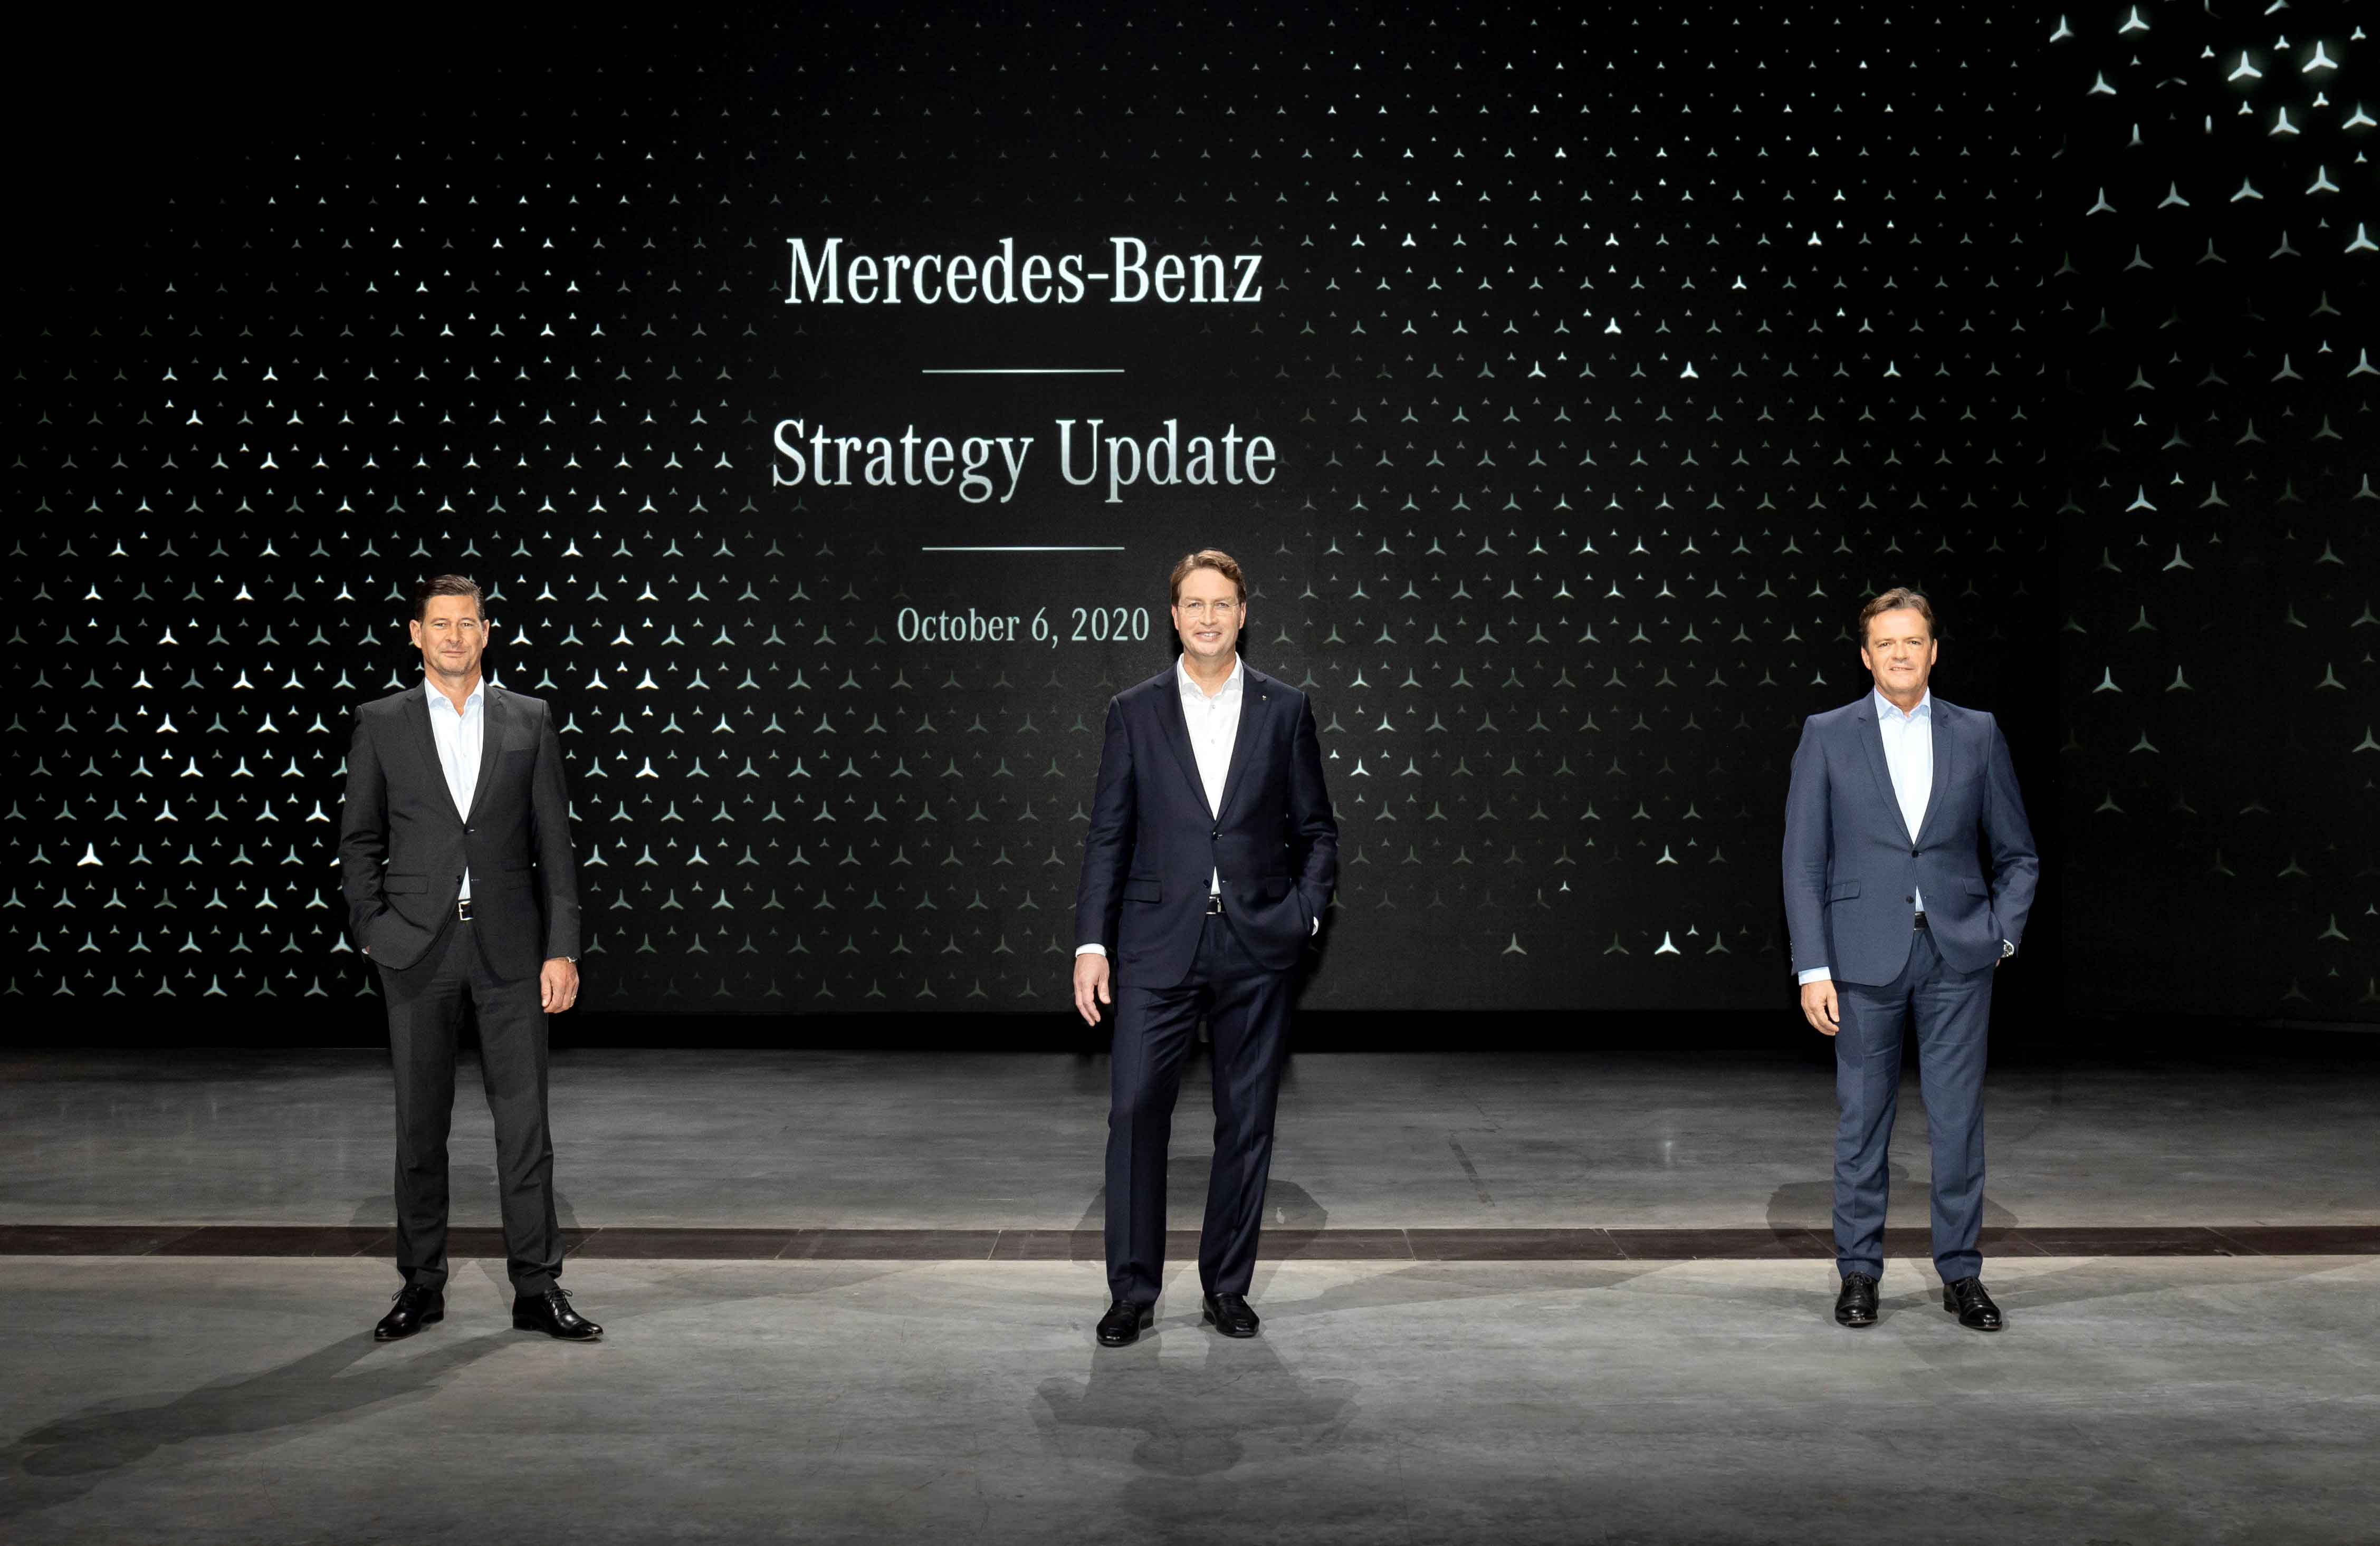 New Mercedes-Benz strategy announced